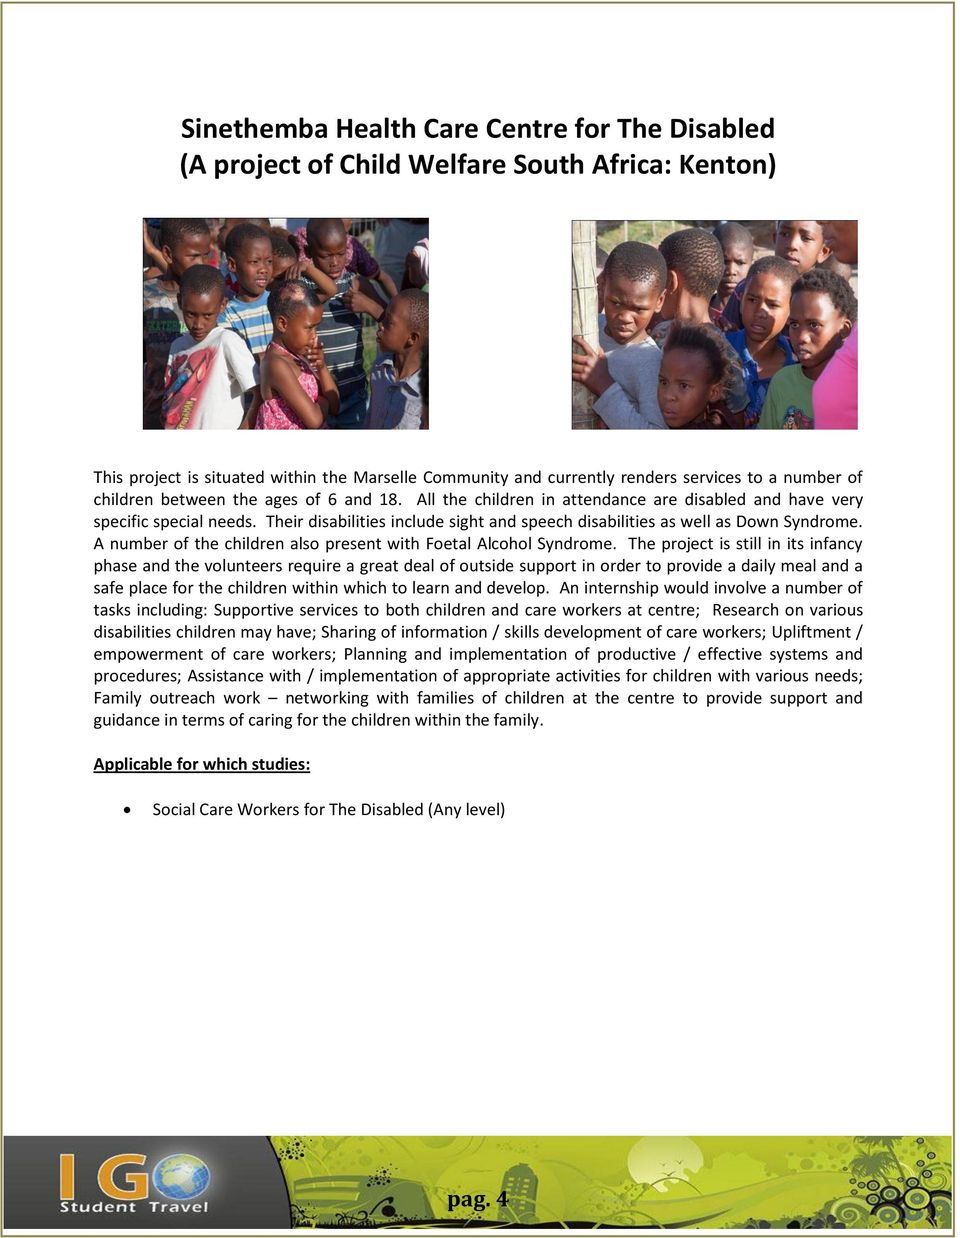 A number of the children also present with Foetal Alcohol Syndrome.